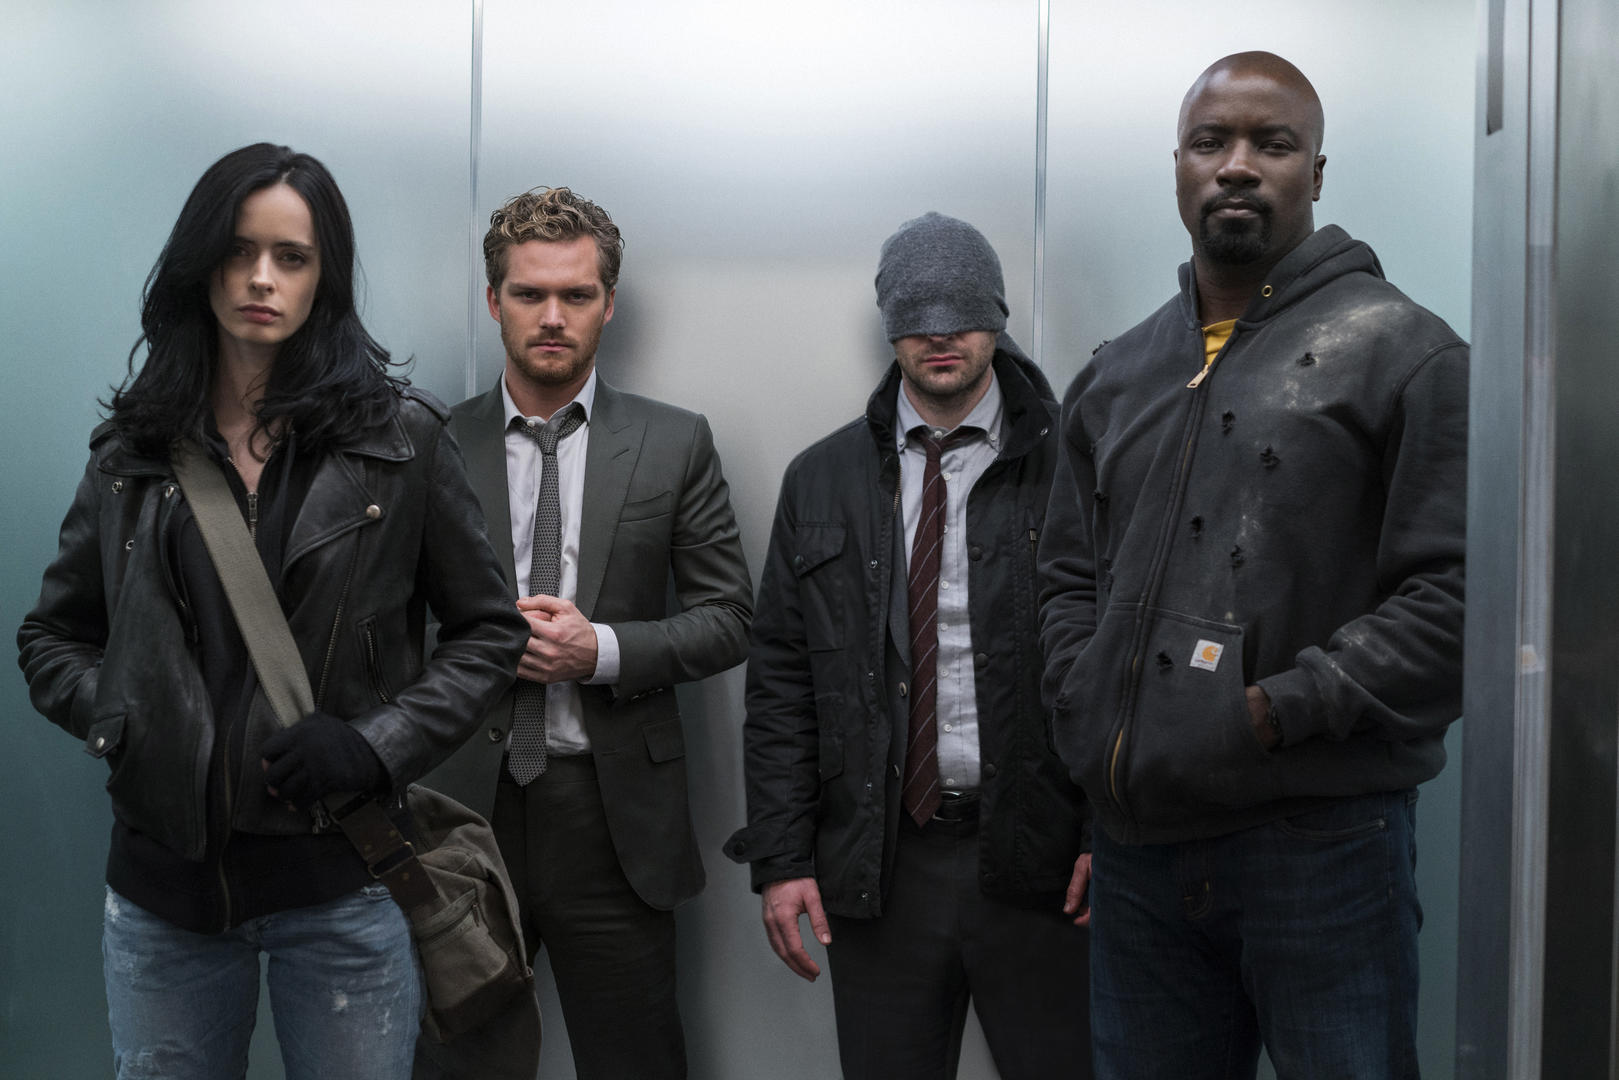 The cast of The Defenders which is coming to Netflix in August.